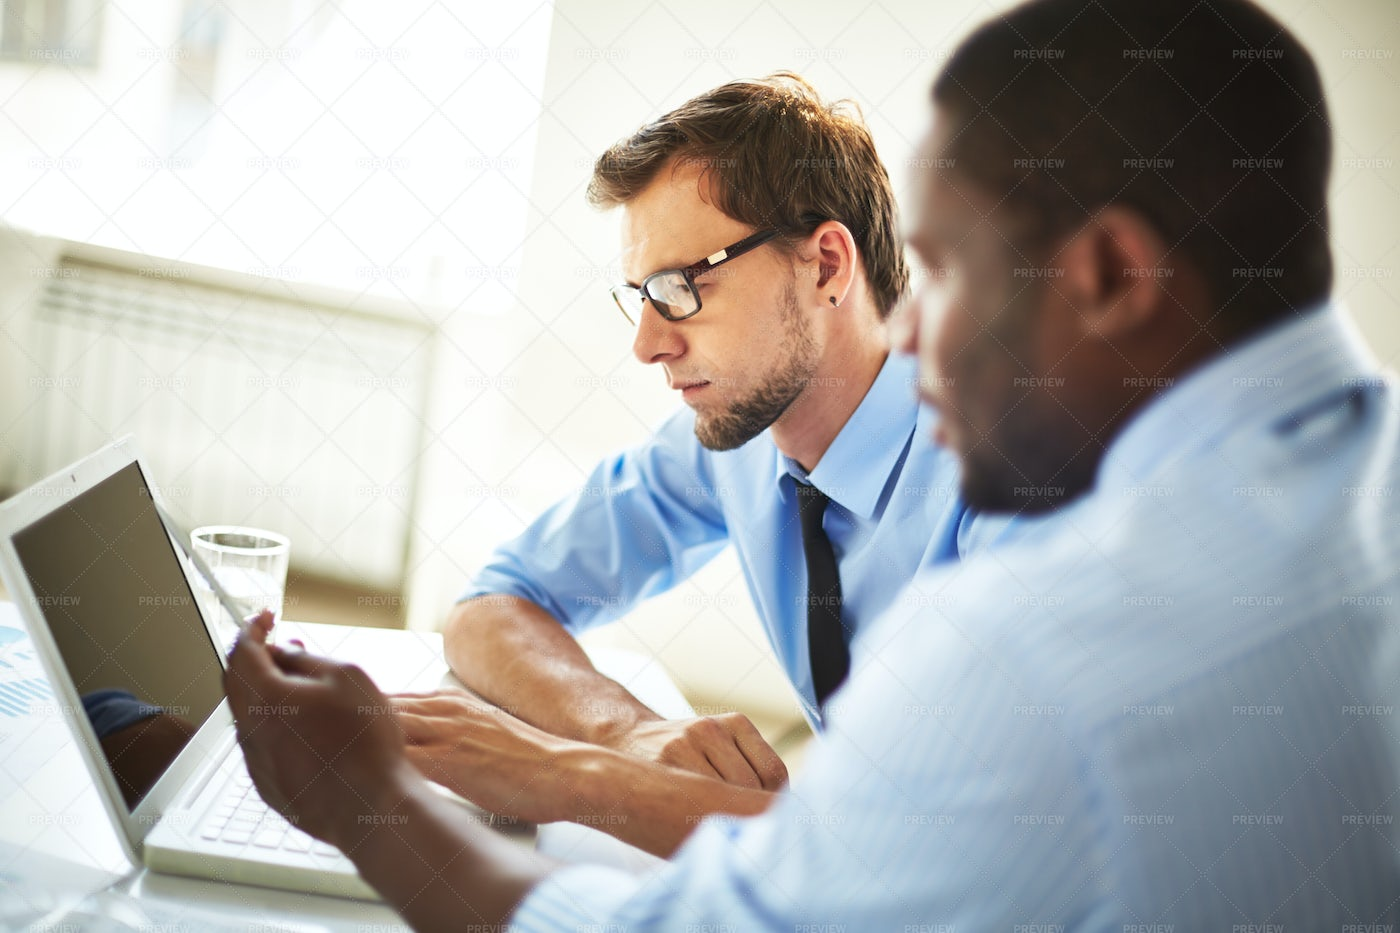 Financial Managers Wrapped Up In Work: Stock Photos